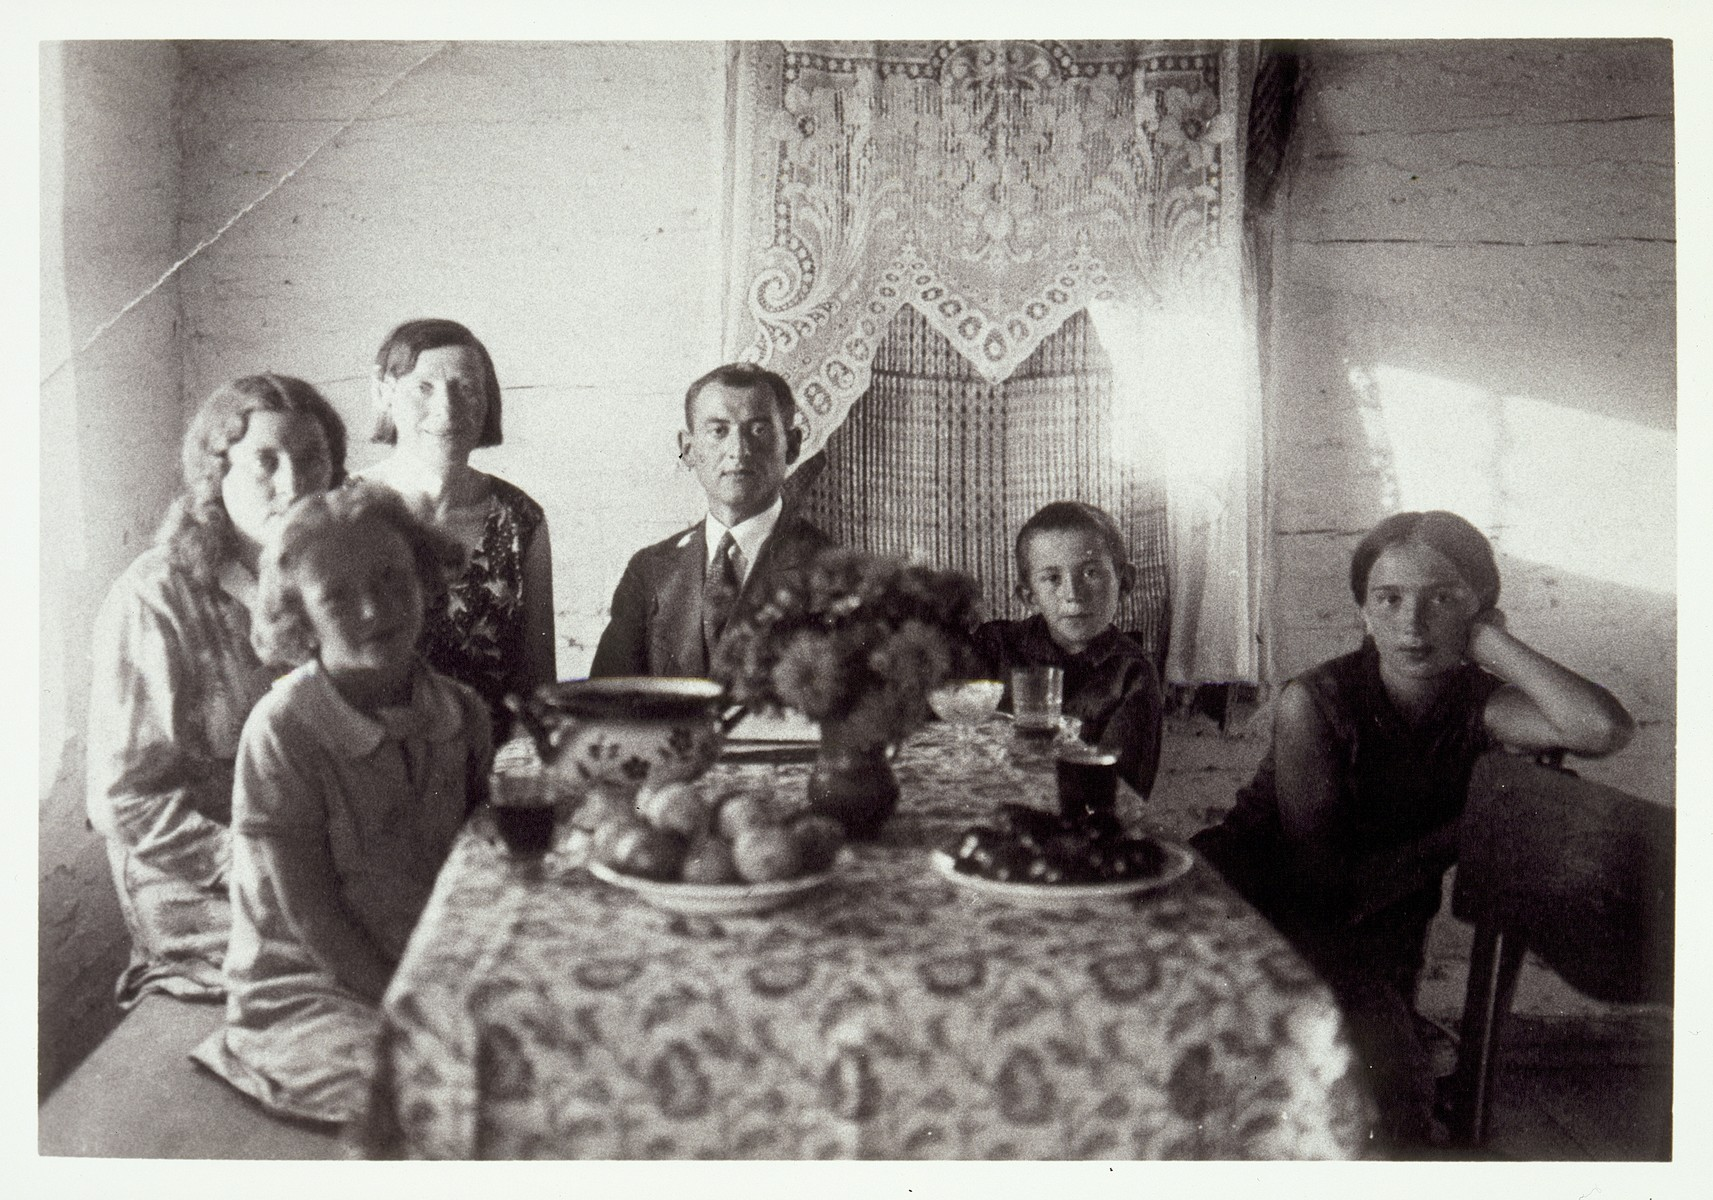 Dr. Zytoner, an assimilated Jewish veterinarian from Warsaw, sits in the center of a group of women and children around the Moszczenik dining room table.   Dr. Zytoner boarded at the Moszczenik home while working in Eisiskes.  Pictured from right to left are Atara Kudlanski, her brother Bill, Dr. Zytoner, Atara and Bill's mother Hanneh-Beile  (nee Moszczenik), her sister Liebke, and her daughter Zltaka.    Hanneh-Beile and her three children immigrated to America.  Liebke was killed by the Polish Home Army.